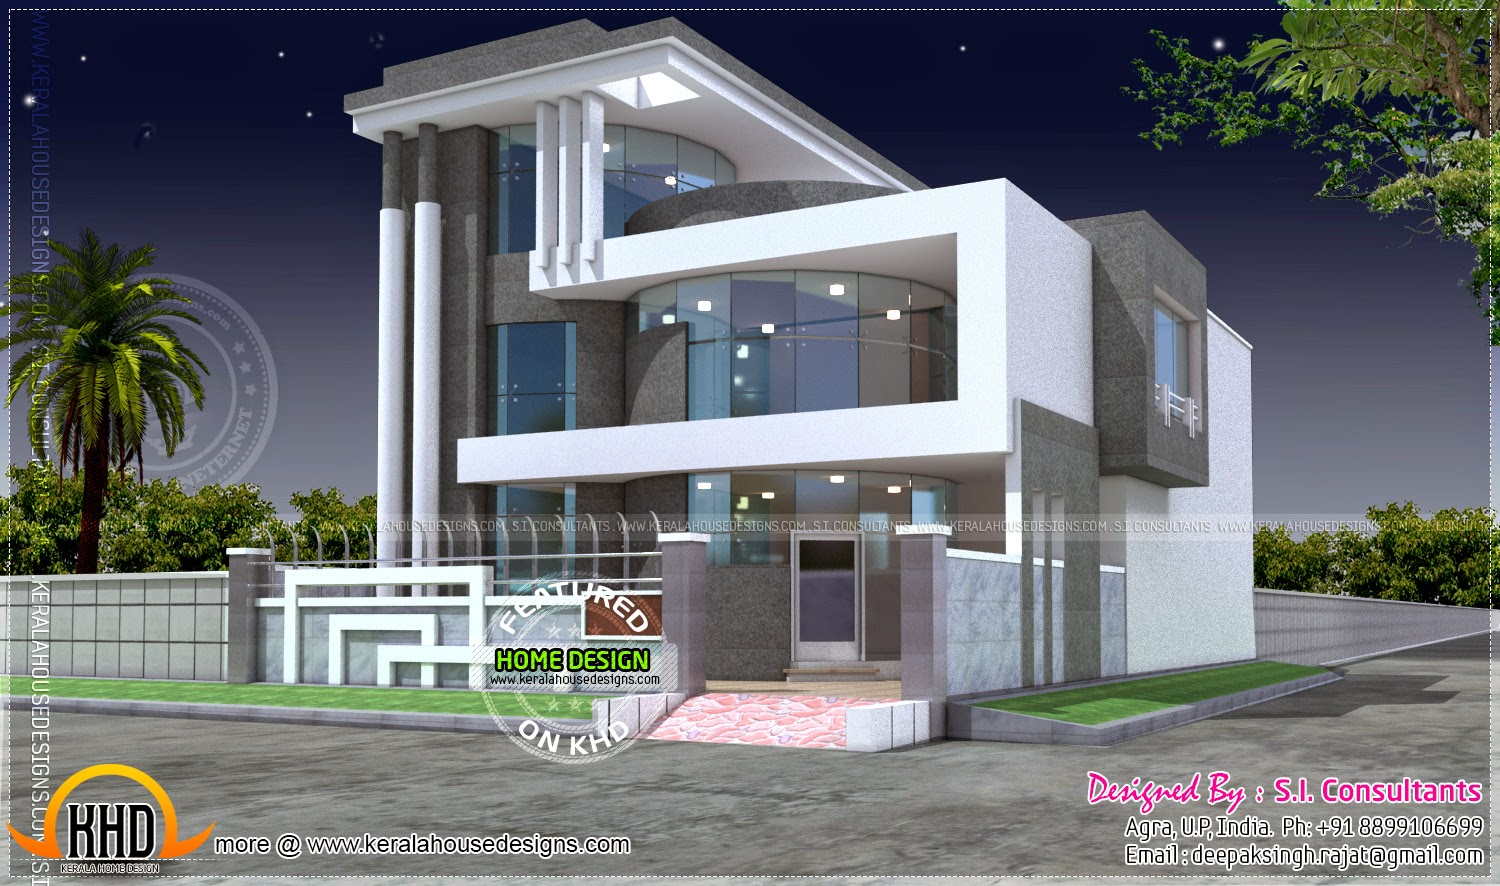 Unique house designs interior - Unique Luxury Home Design Kerala Home Design And Floor Plans